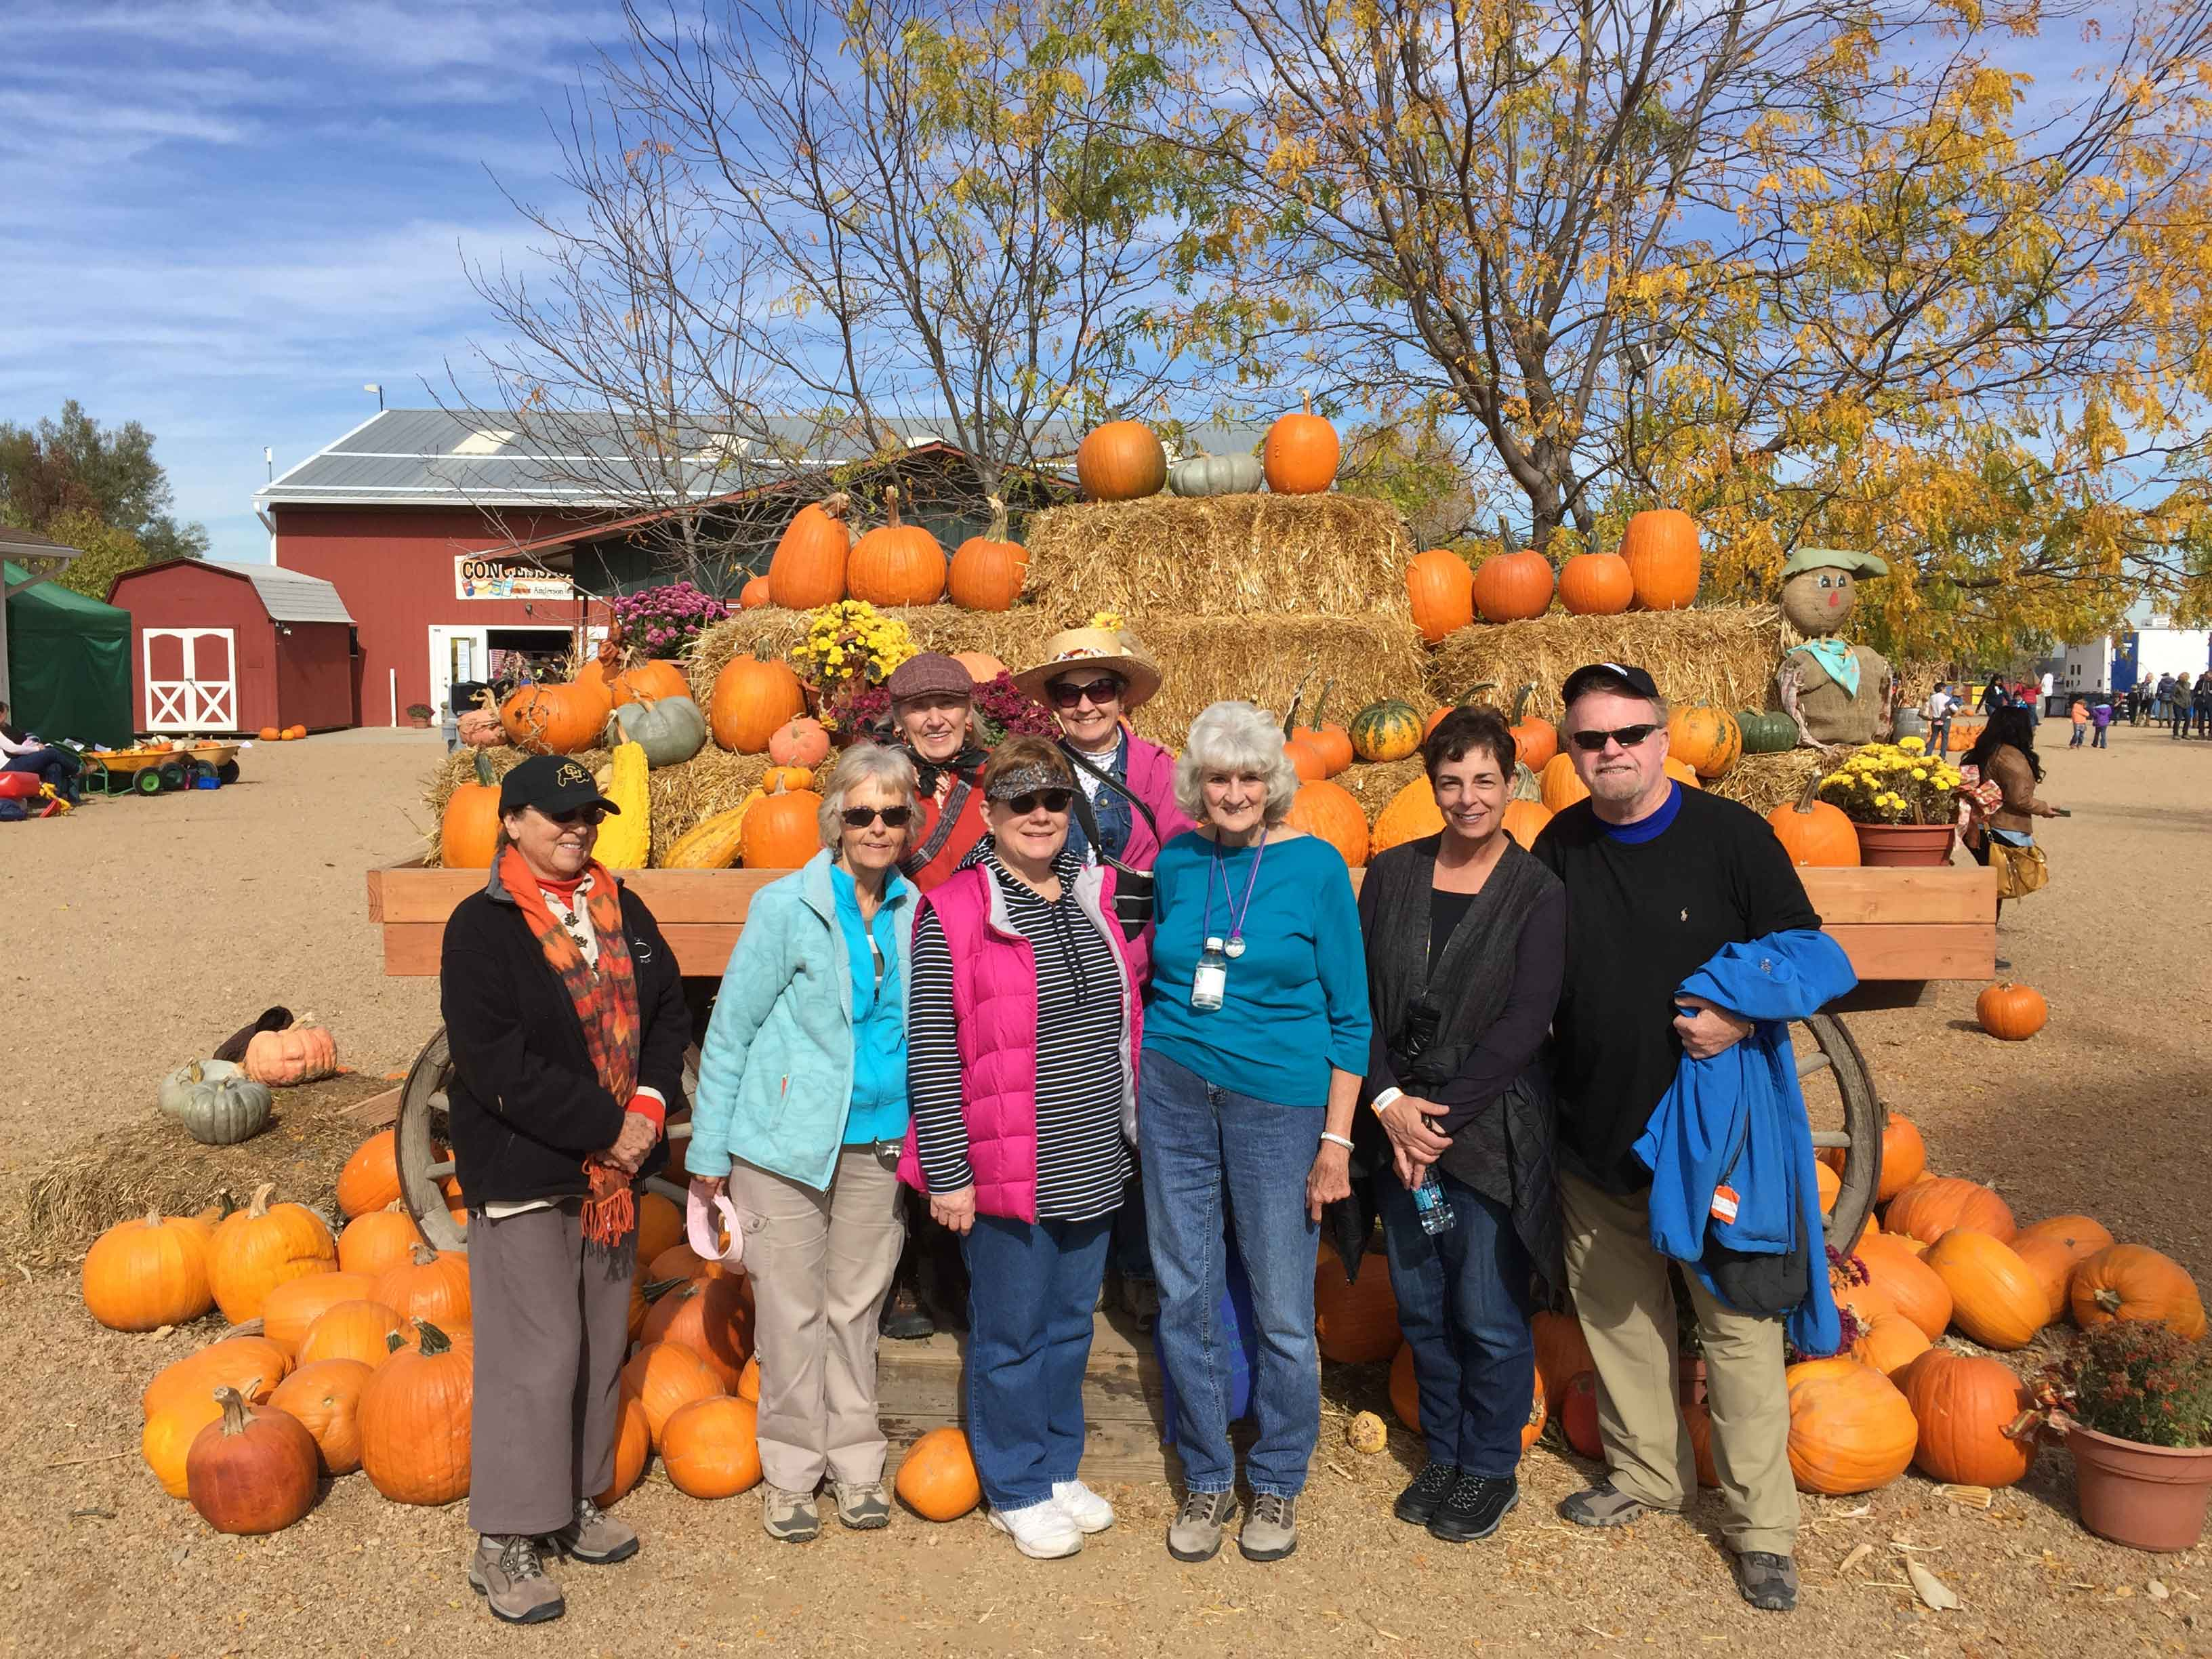 Adults posing in front of stacks of hay bails and pumpkins